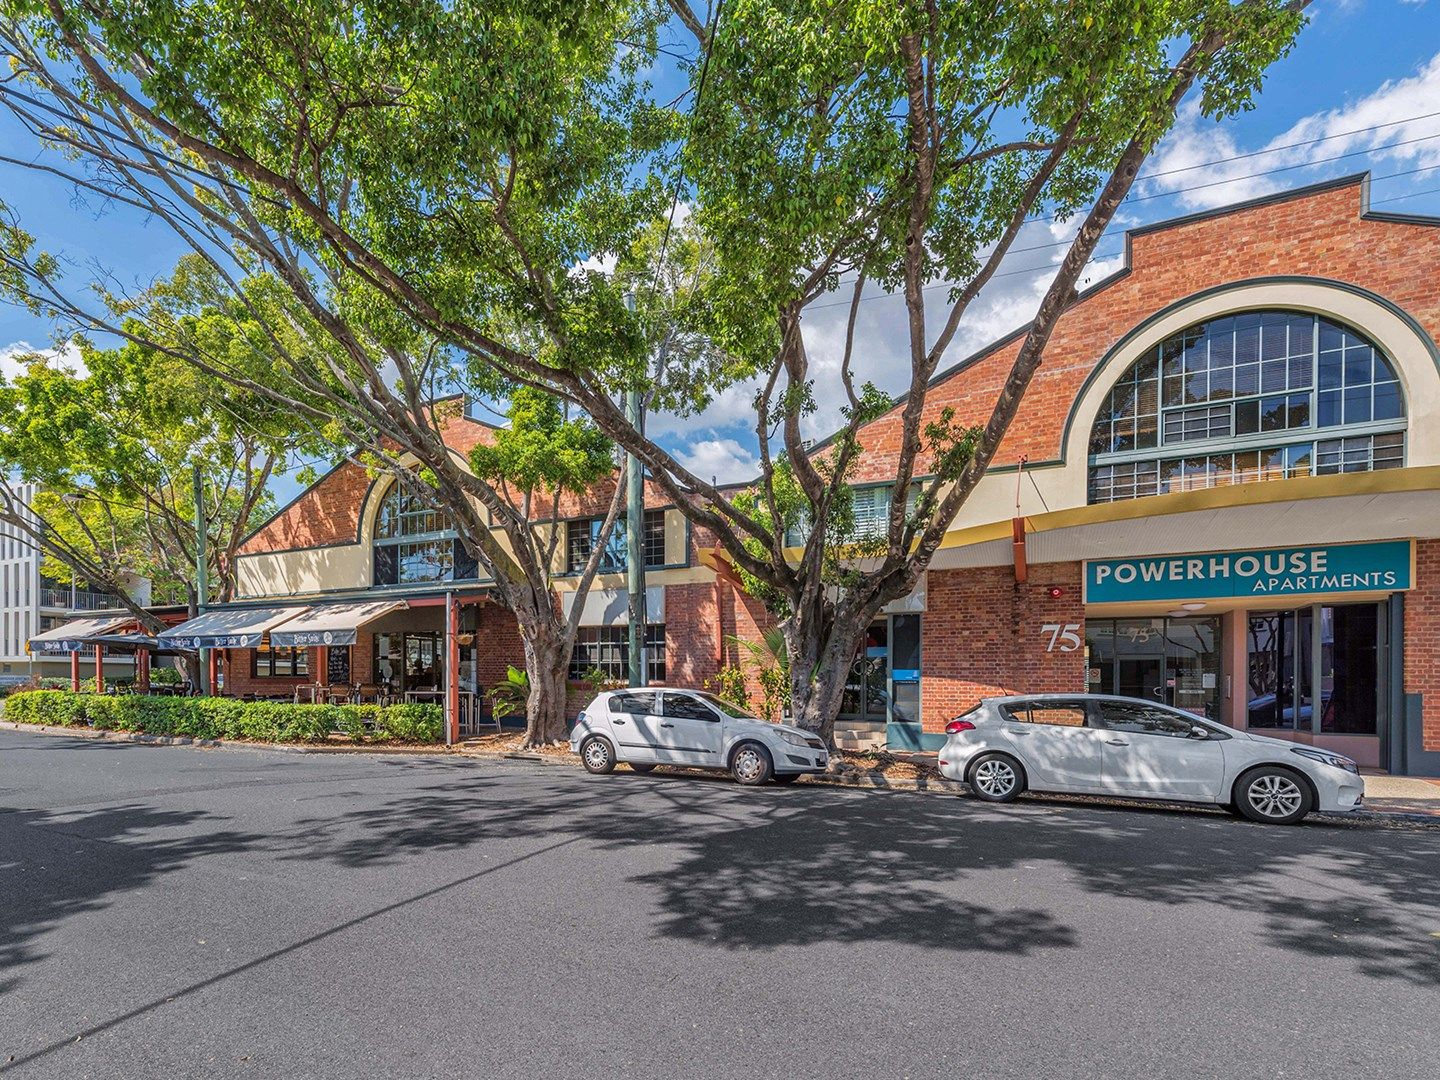 46/75 Welsby Street, New Farm QLD 4005, Image 0